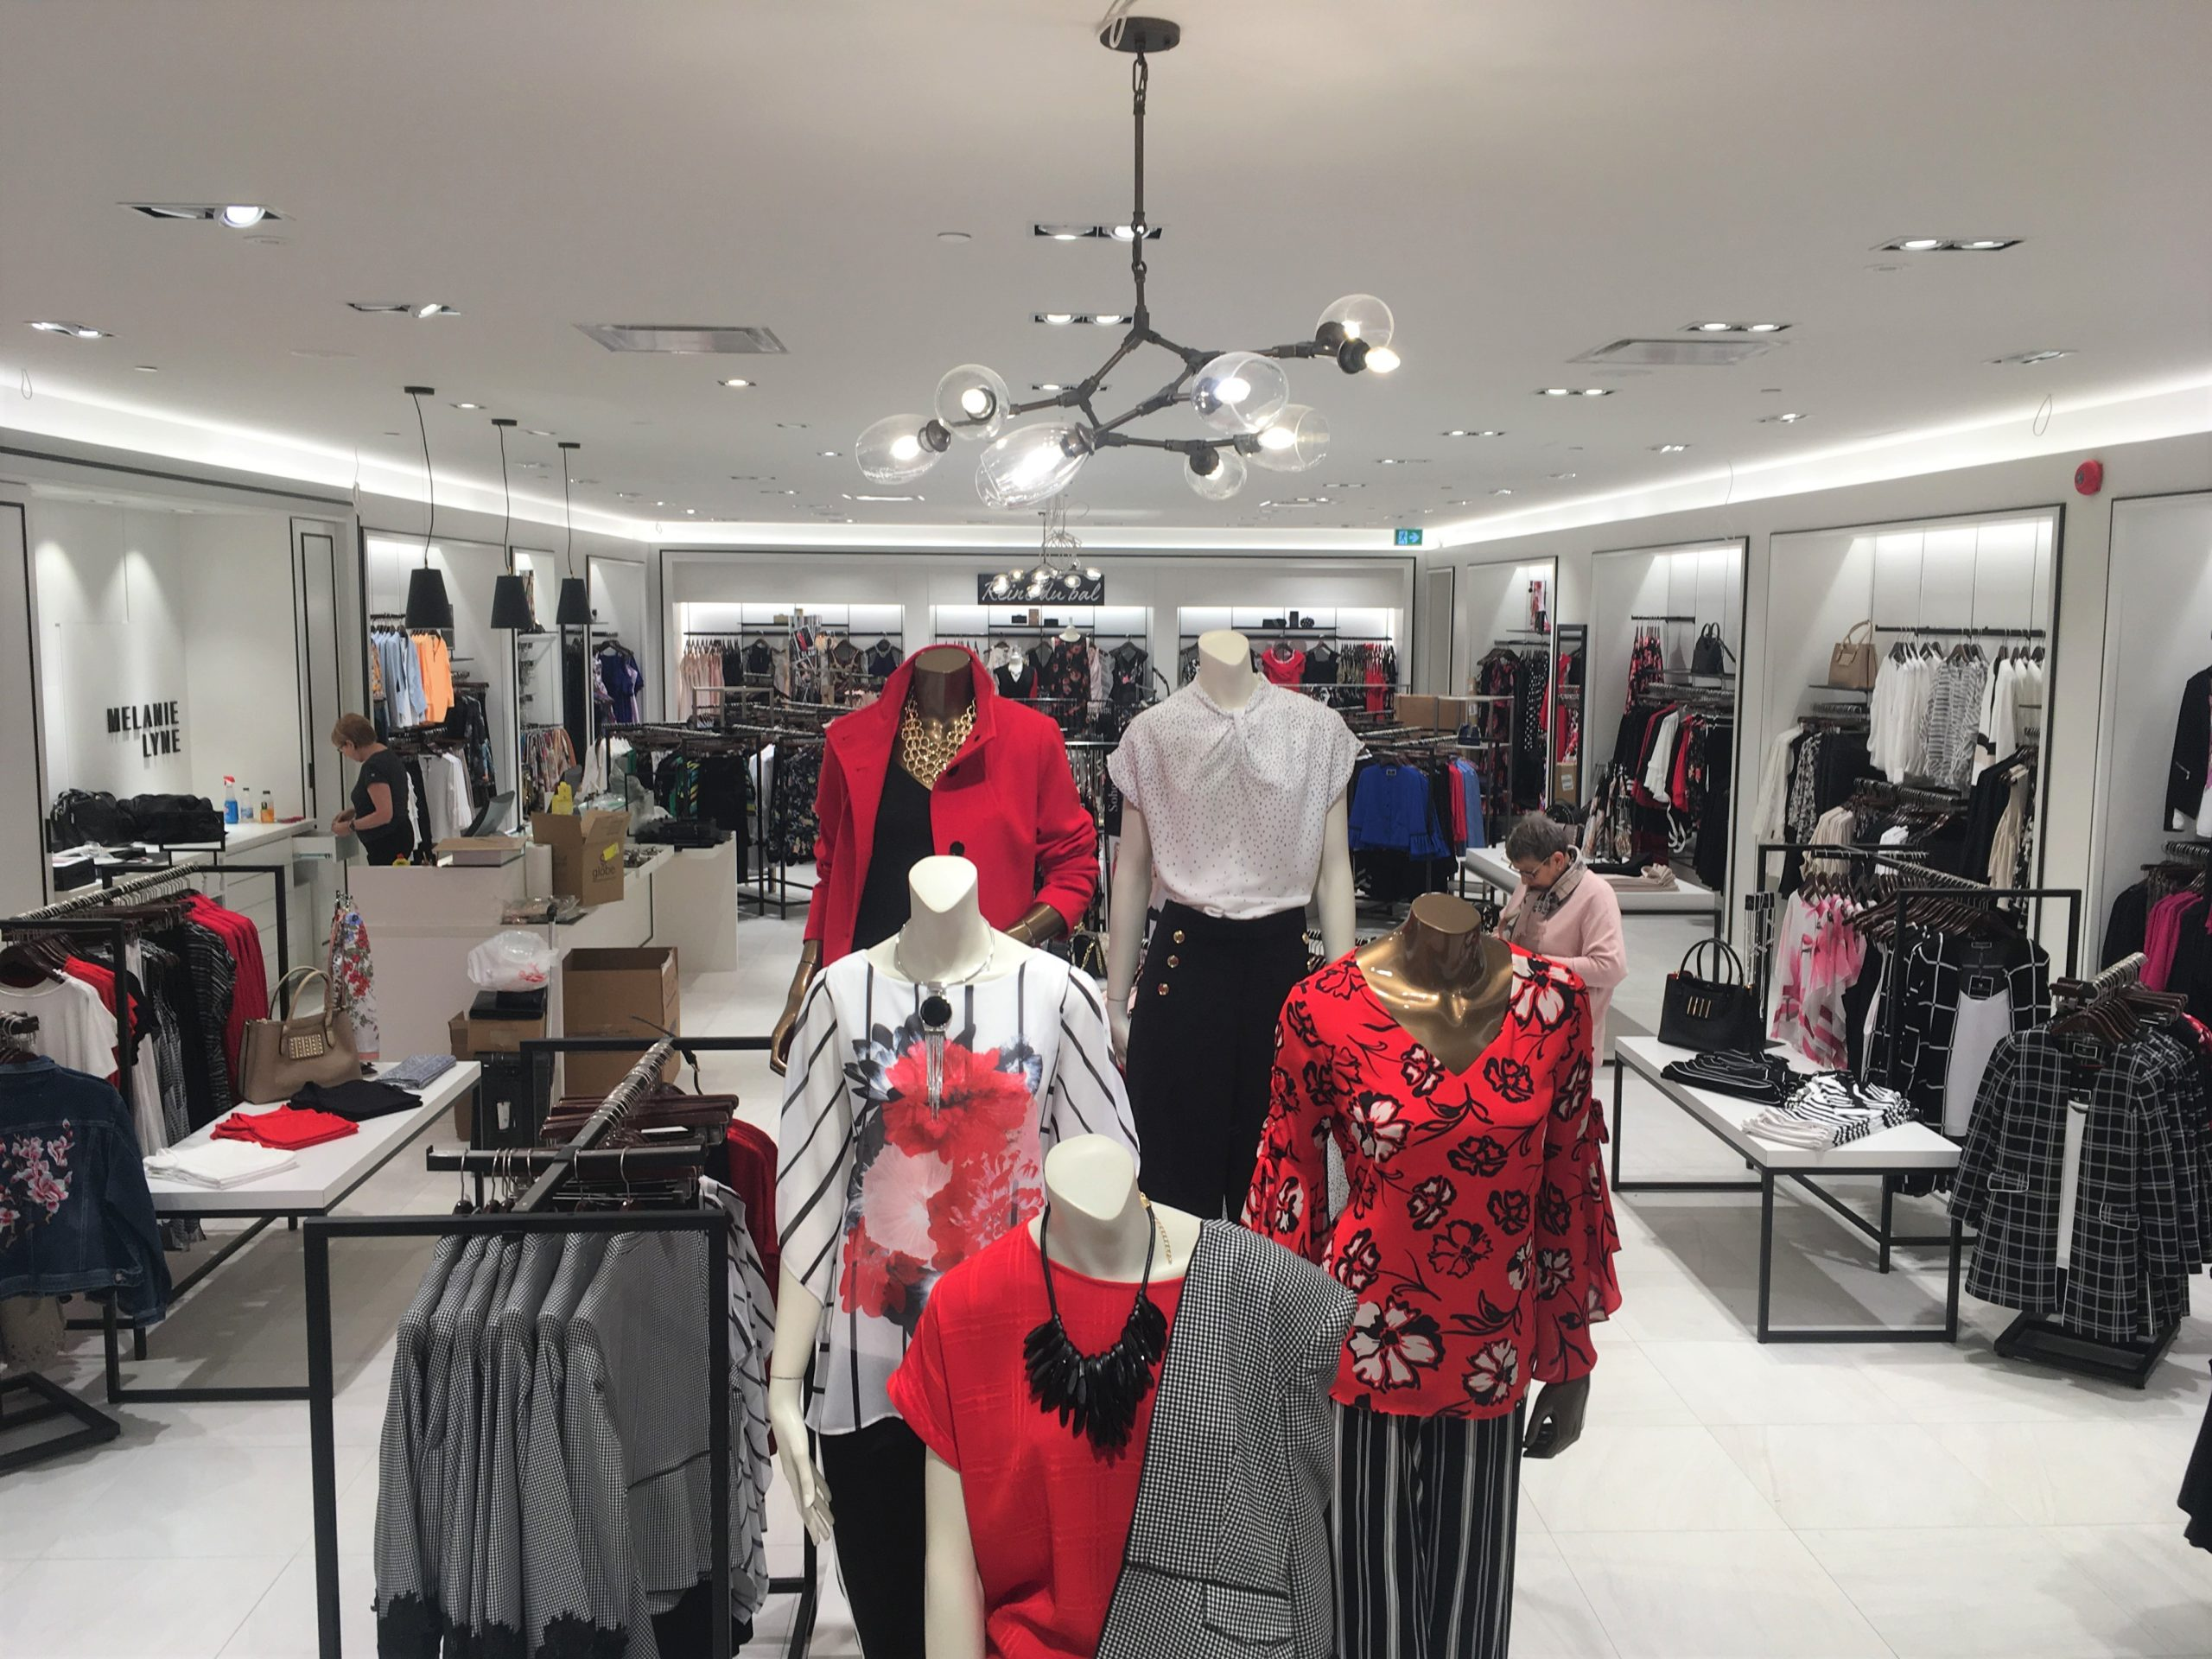 Store Interior Overview